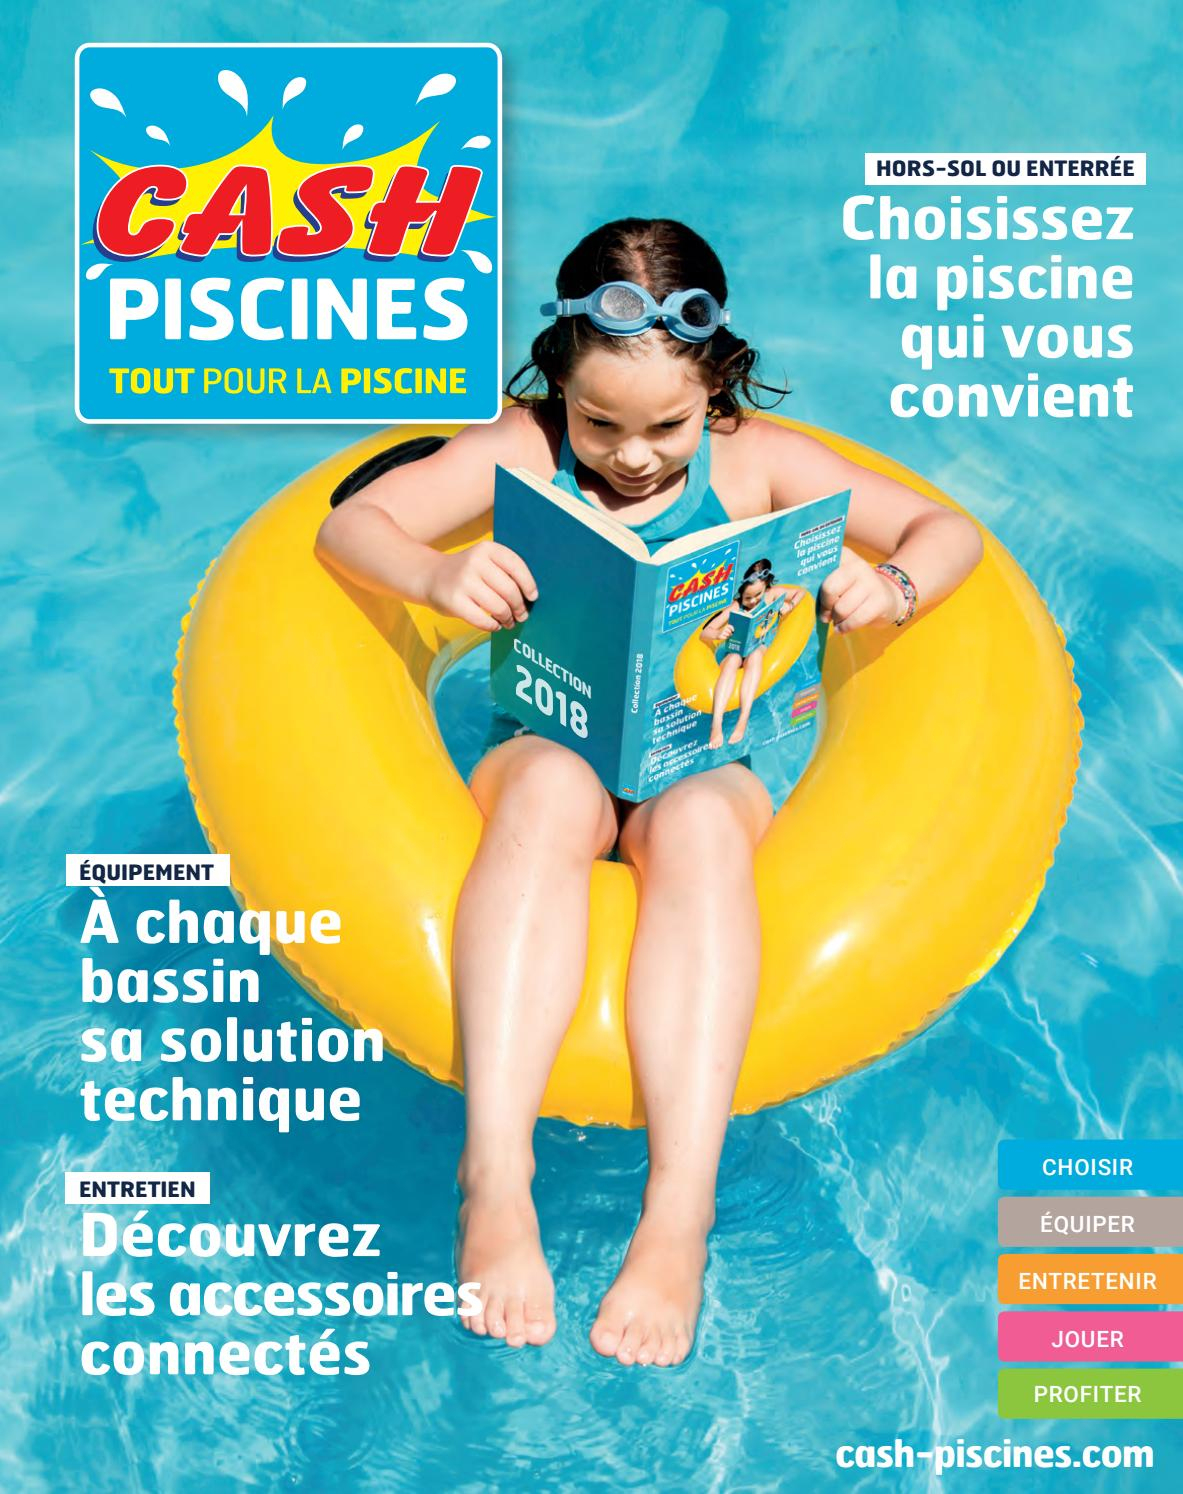 Catalogue Cash Piscine 2018 By Octave Octave - Issuu avec Cash Piscine Saint Jean D Illac